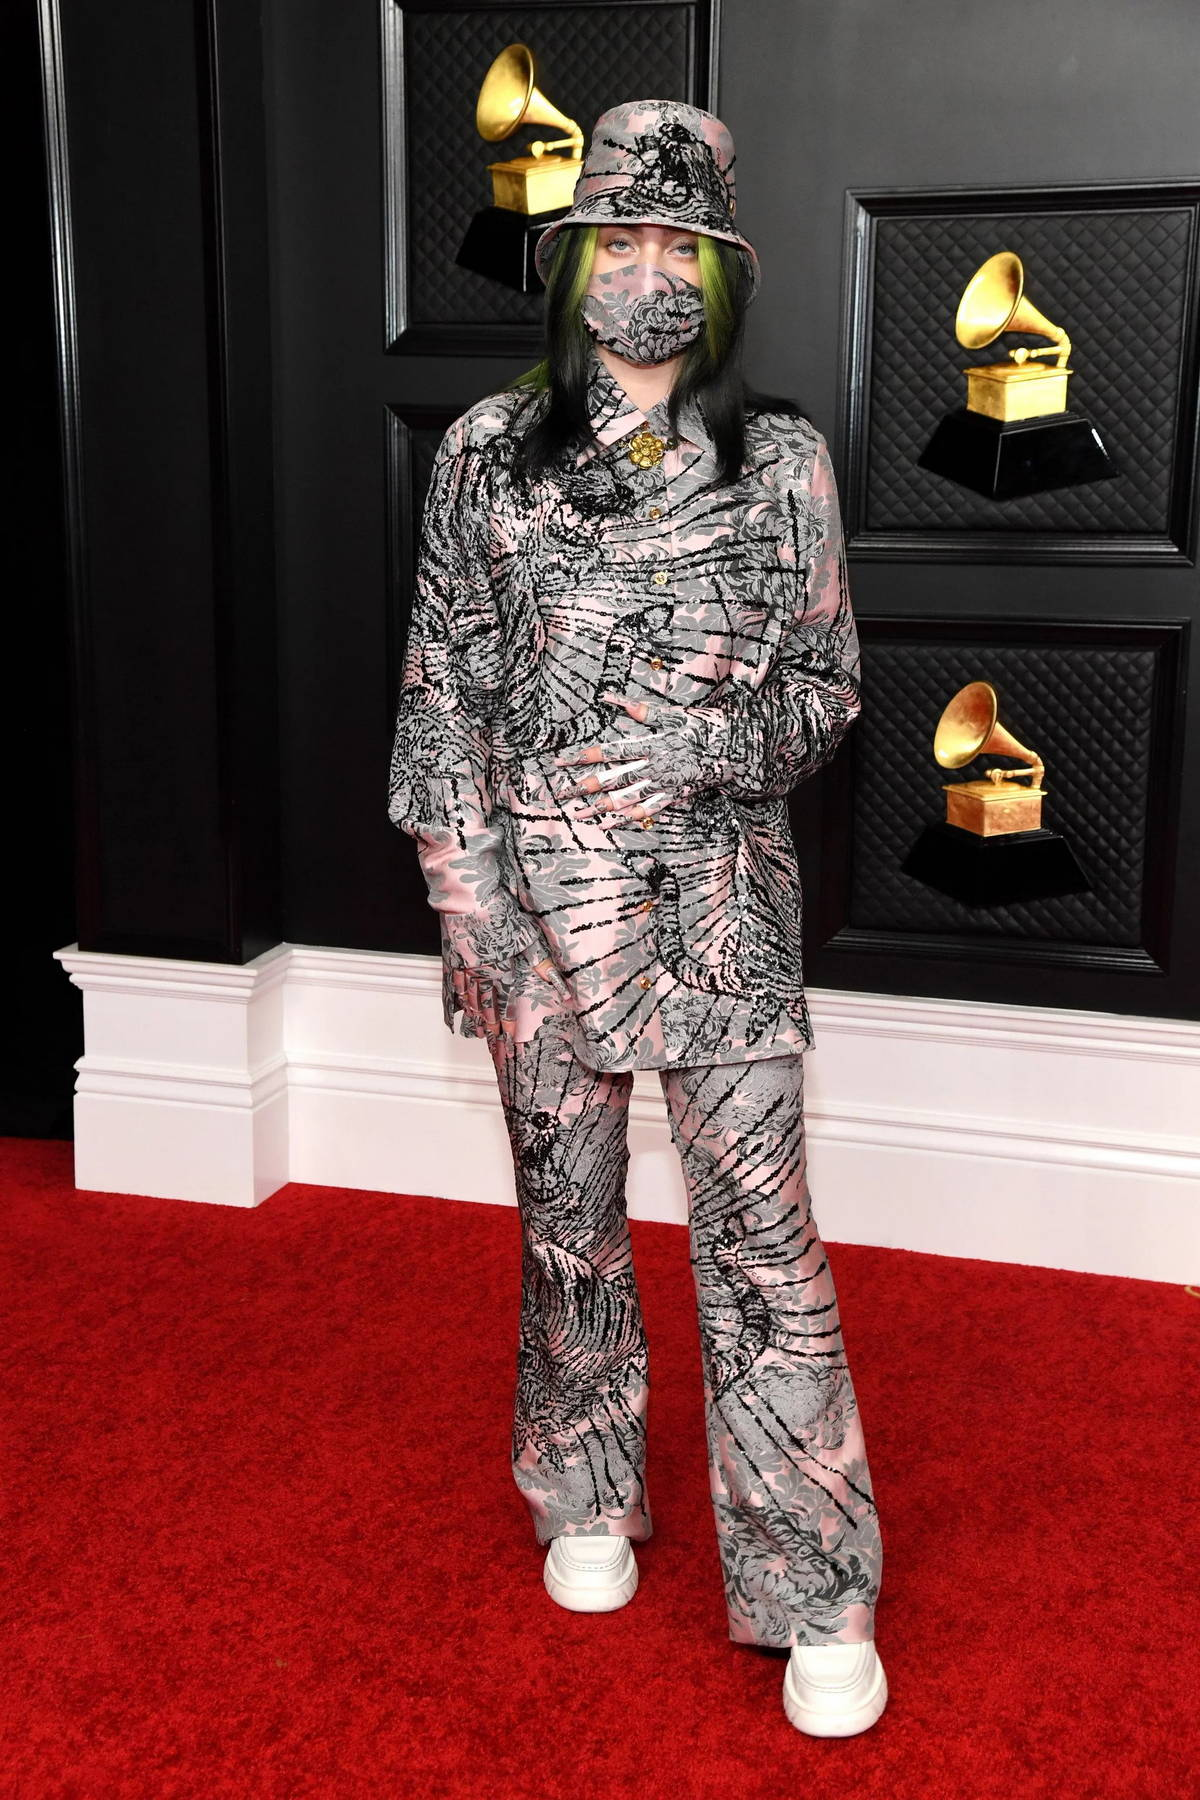 Billie Eilish attends the 63rd Annual GRAMMY Awards at the STAPLES Center in Los Angeles